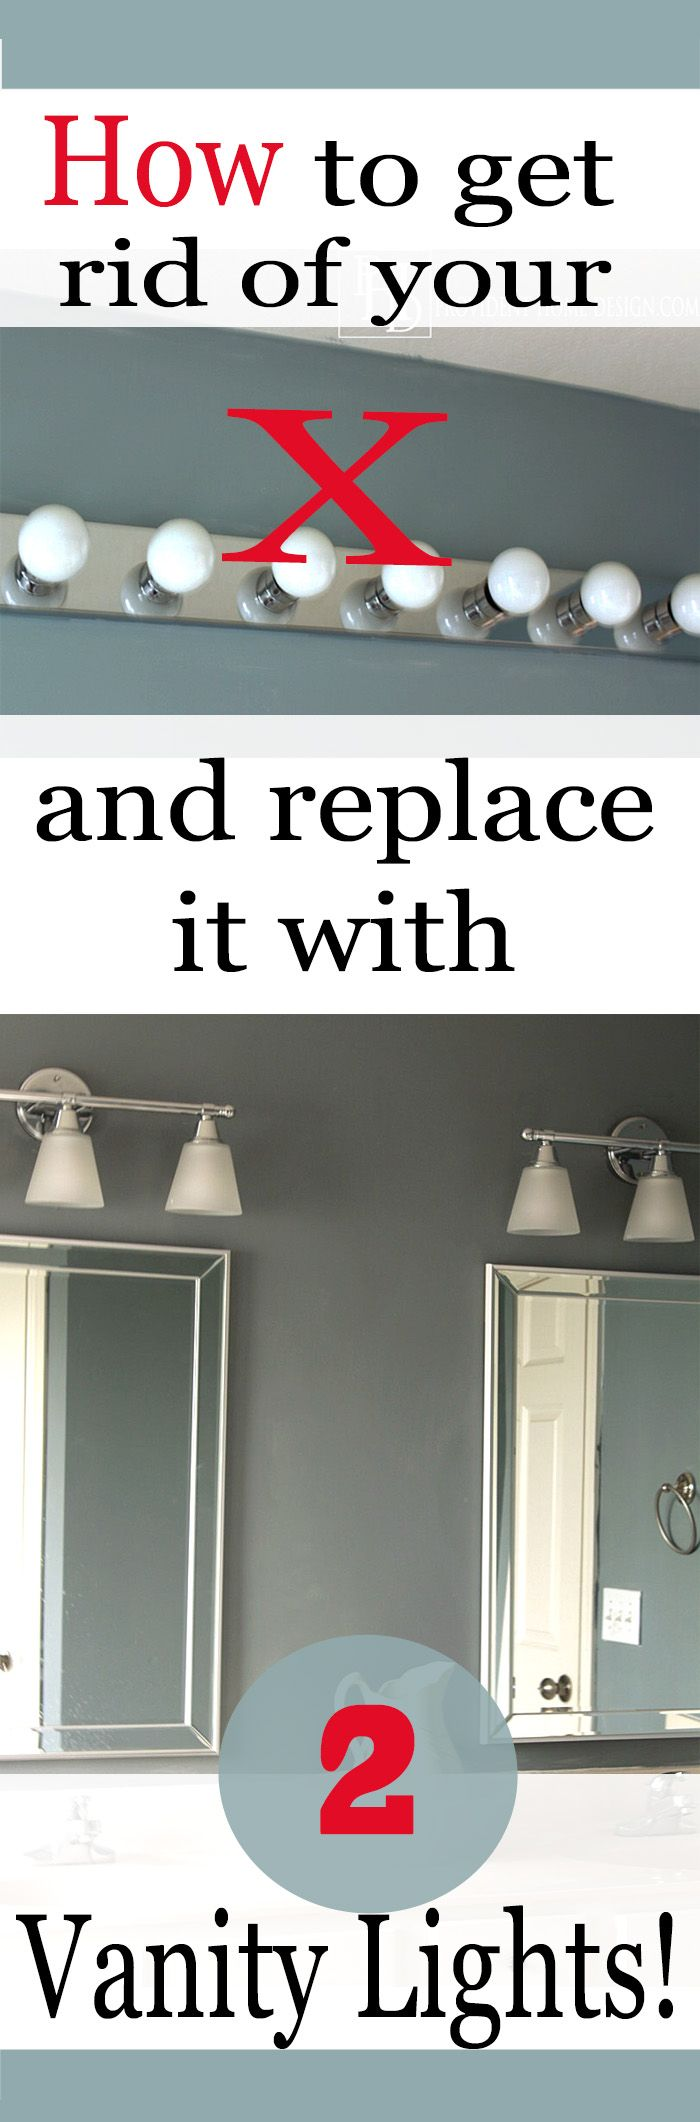 Want to upgrade your hollywood light and replace it with two vanity lights? This is the tutorial for you! Step by step instructions with pictures. Makes such a difference!